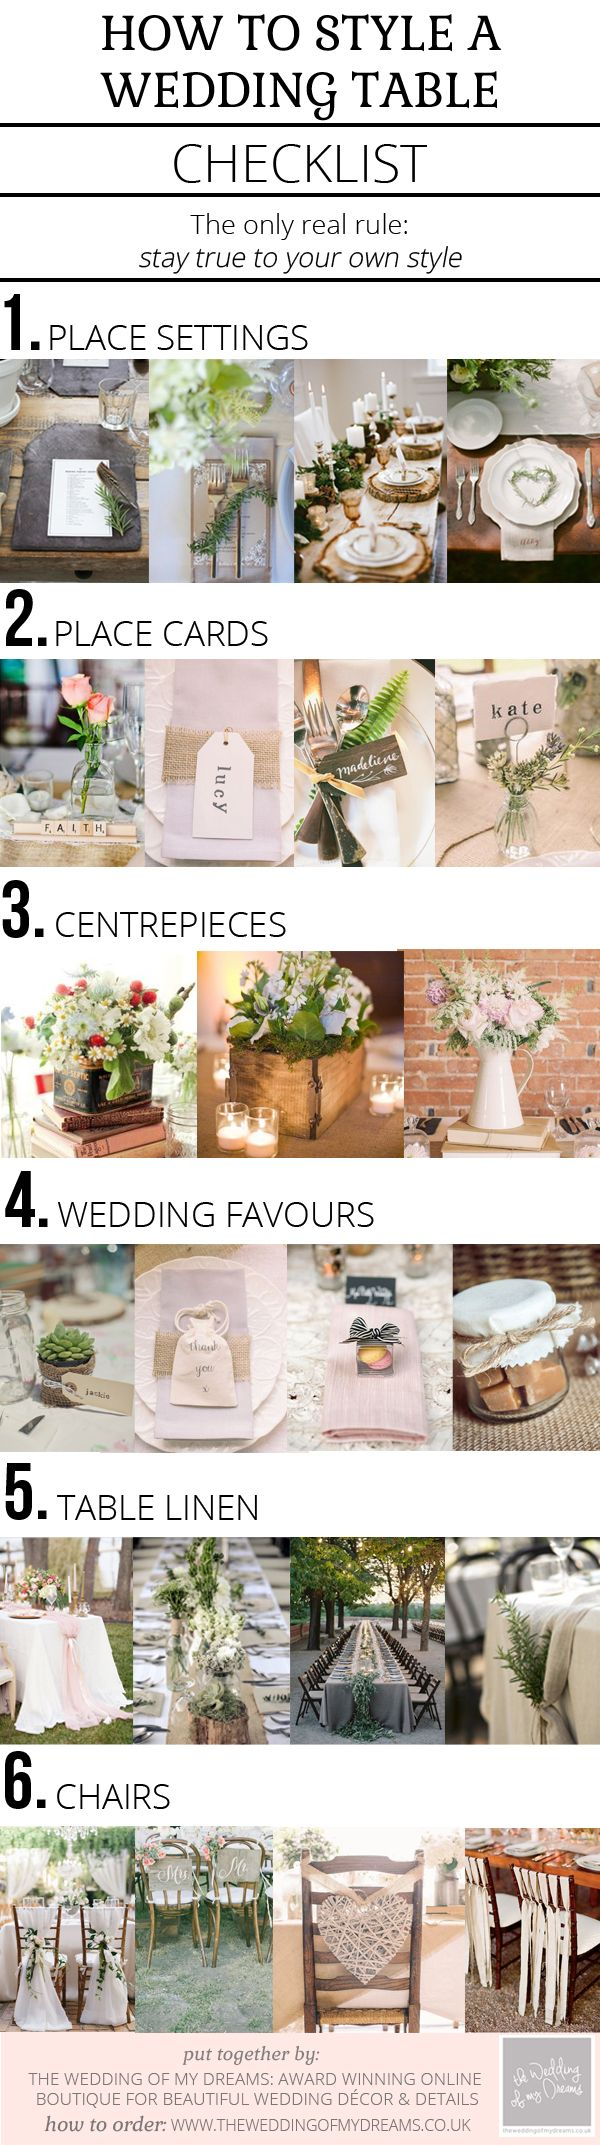 Wedding decorations on tables  How To Style A Wedding Table u Checklist  Wedding tables Weddings